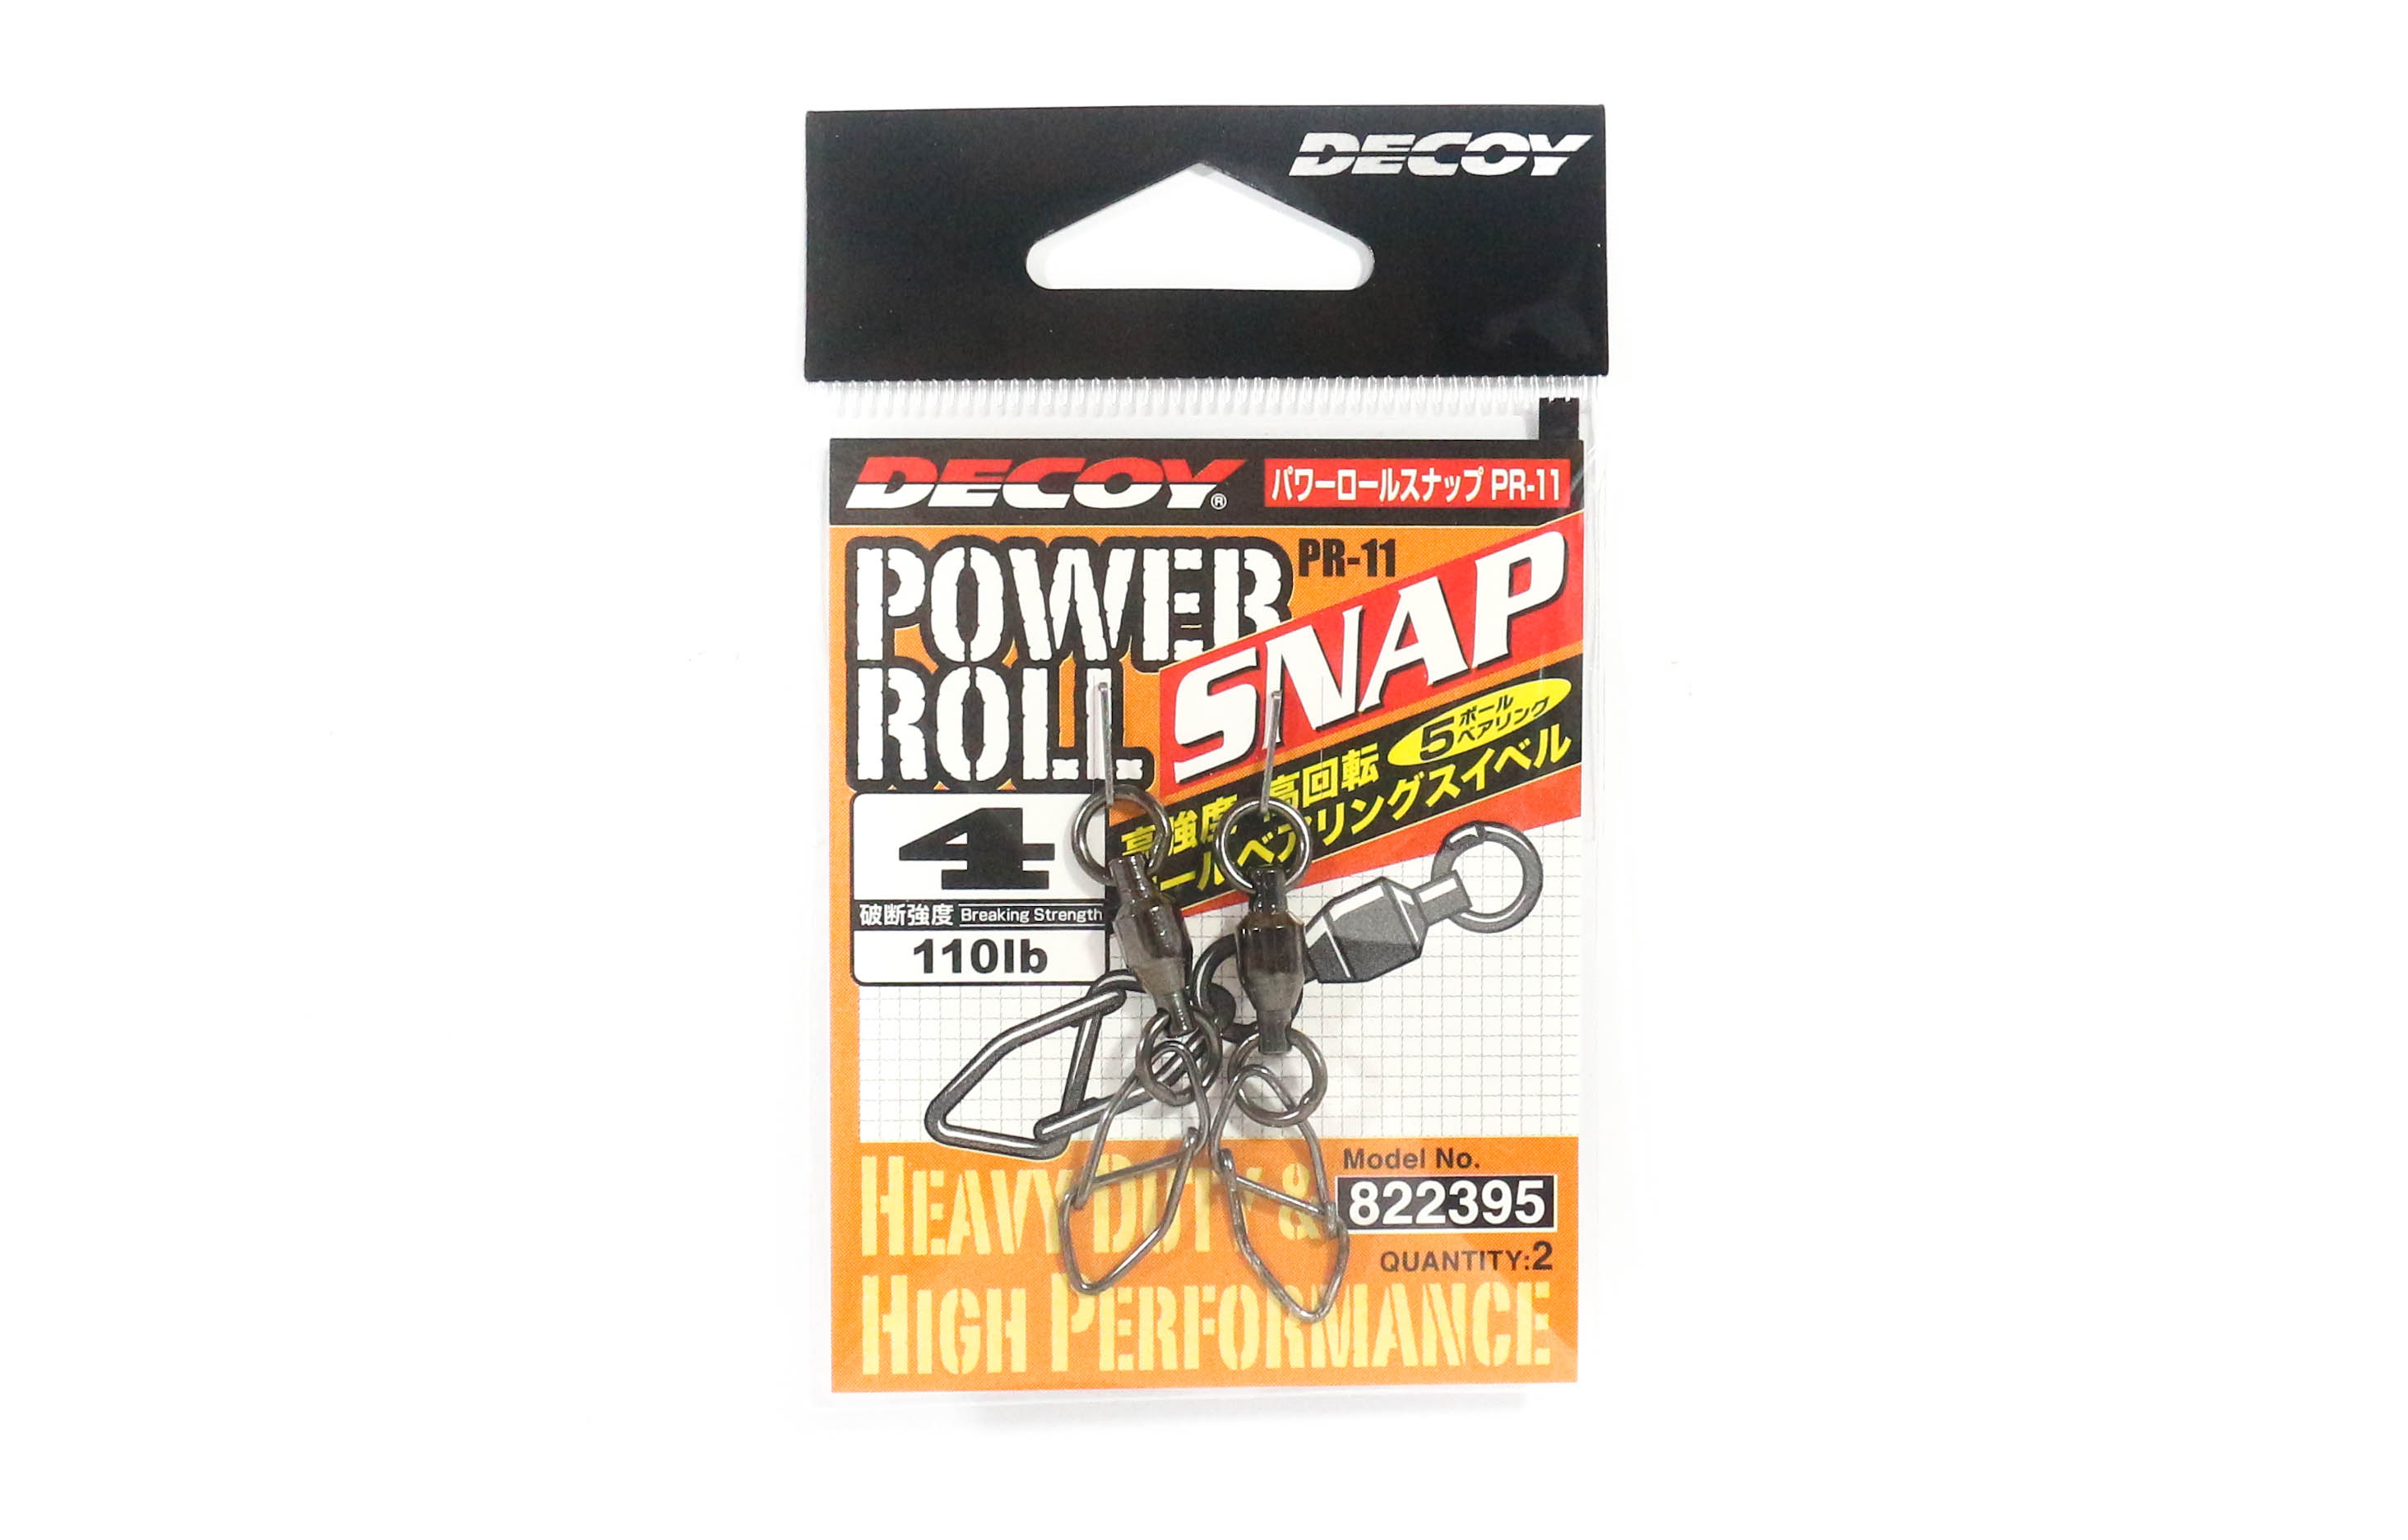 Decoy PR-11 Power Roll Snap Ball Bearing Swivel with Snap Size 4 (2395)